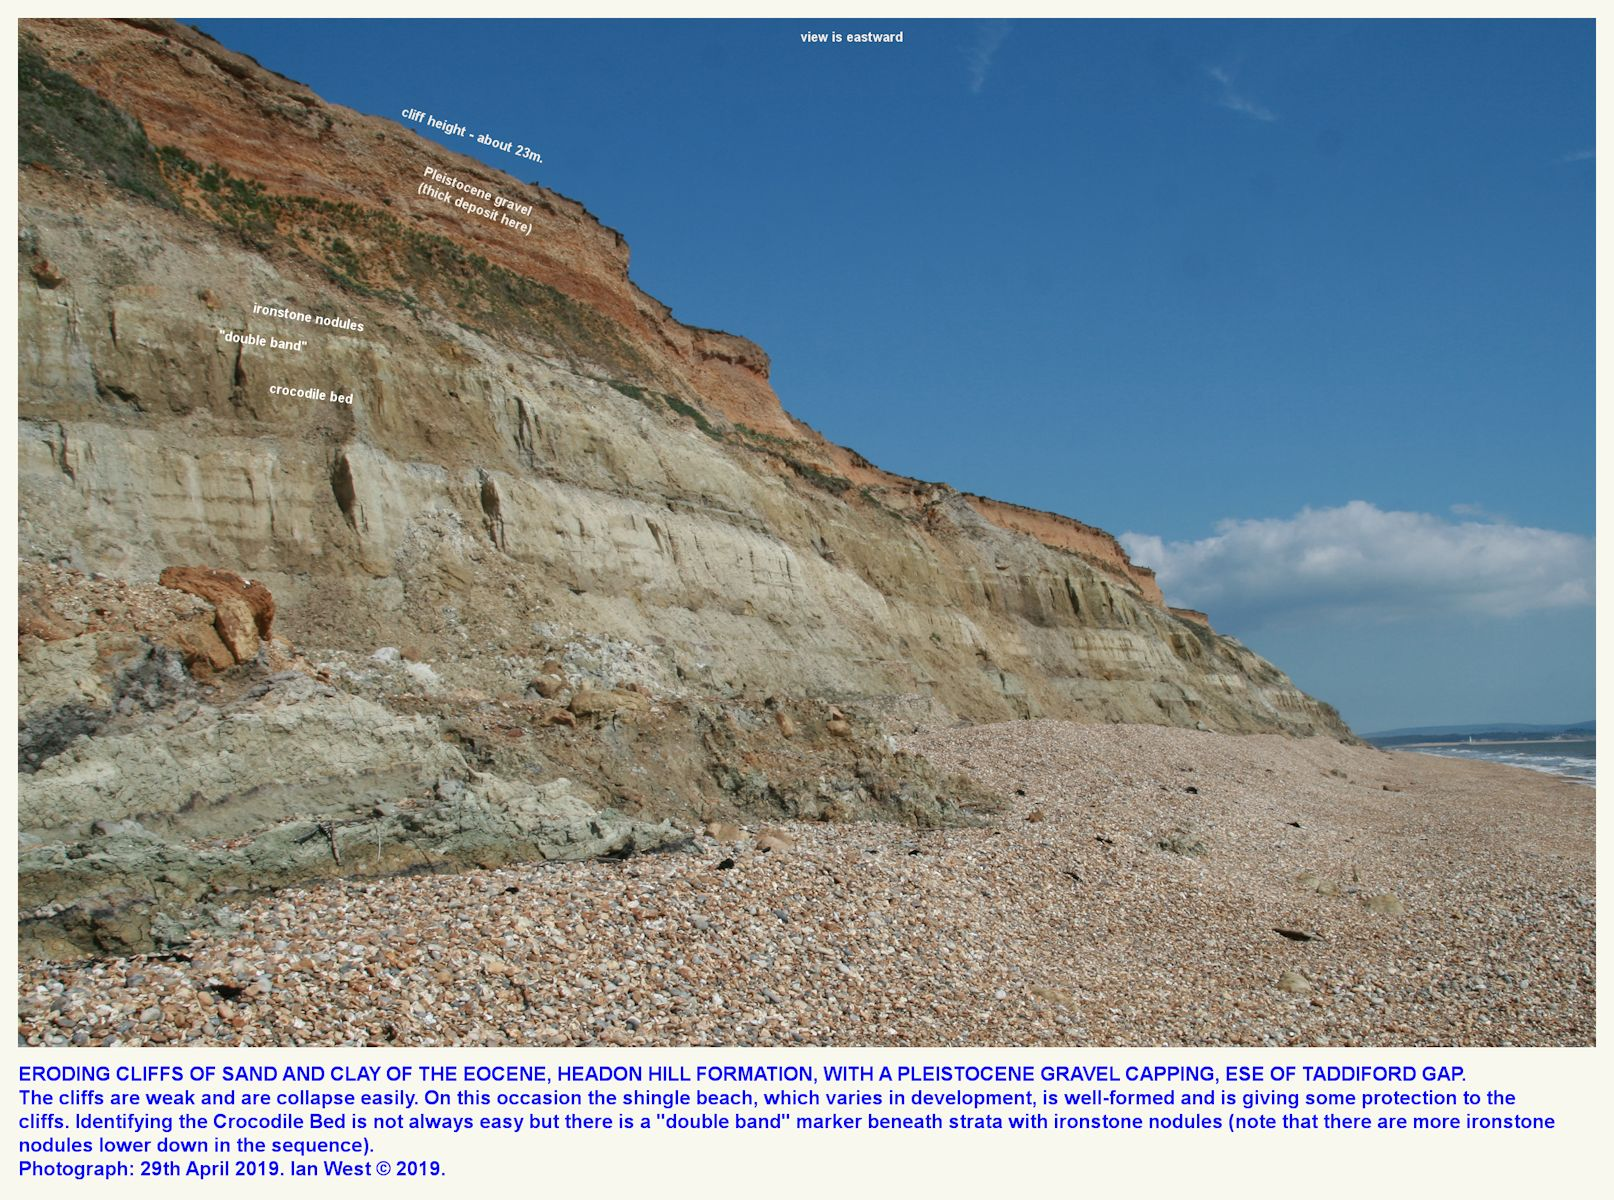 The main cliff section to the ESE of Taddiford Gap showing the Crocodile Bed and other strata, Hordle Cliff, Hampshire, 2019